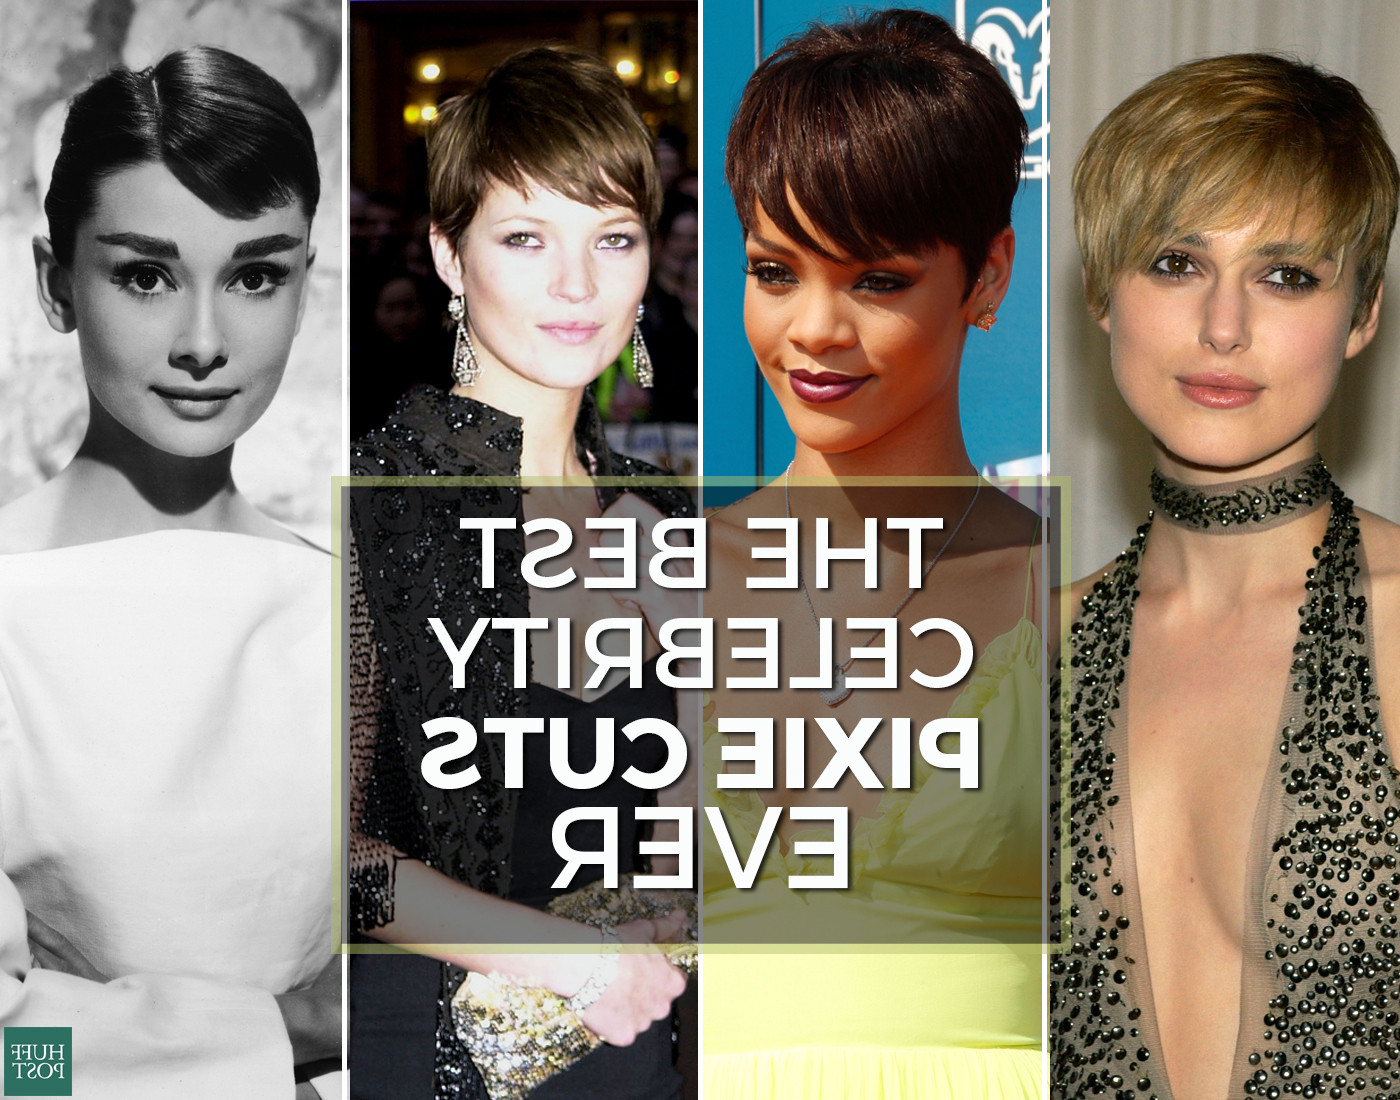 50 Of The Best Celebrity Short Haircuts, For When You Need Some In Cute Celebrity Short Haircuts (View 21 of 25)